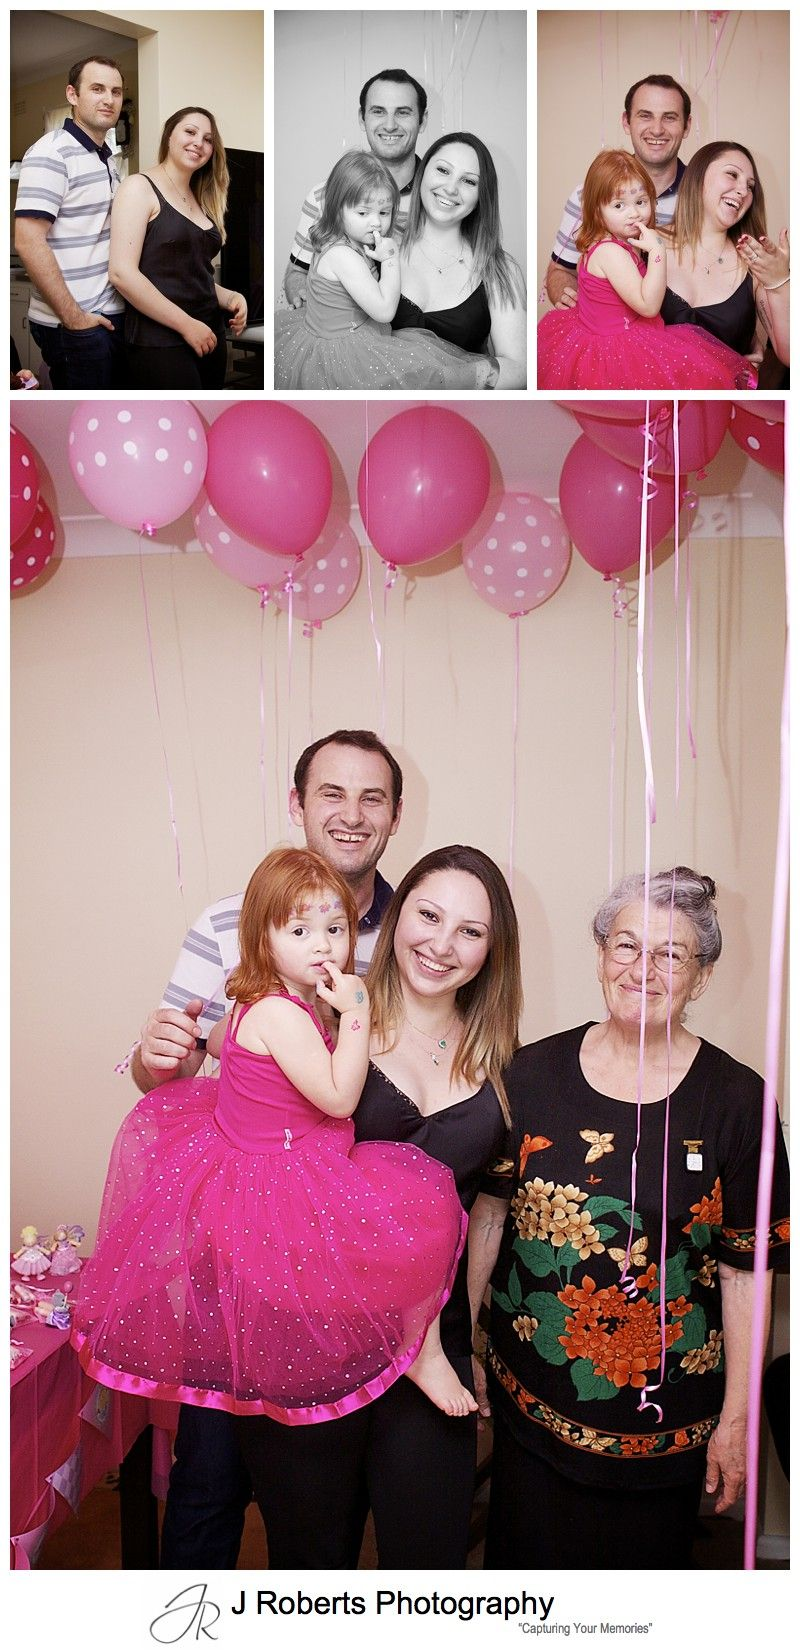 Family portraits at 3 year old girls birthday party - sydney party photography